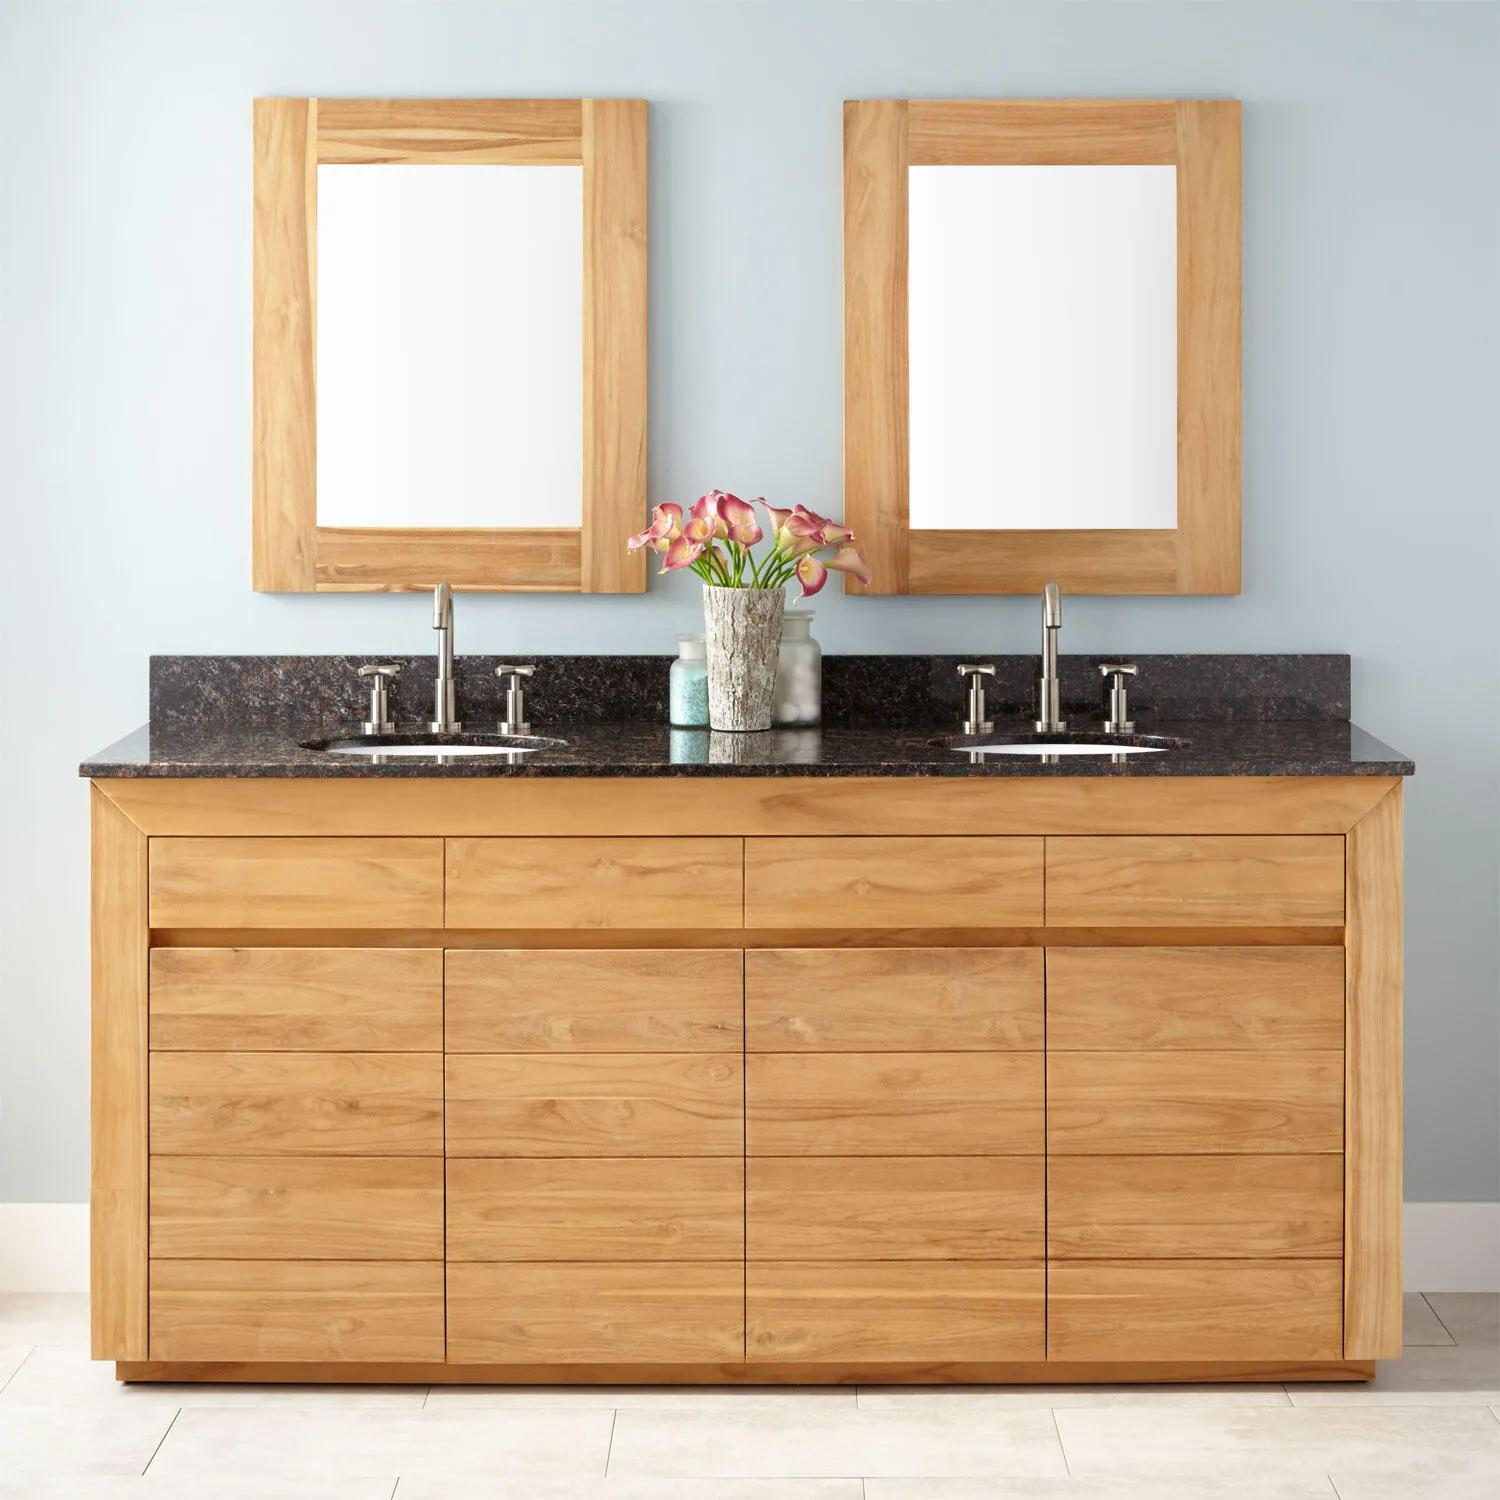 72 Bastian Teak Double Vanity For Undermount Sinks Natural Teak Double Sink Vanities Bathroom Vanities Bathroom